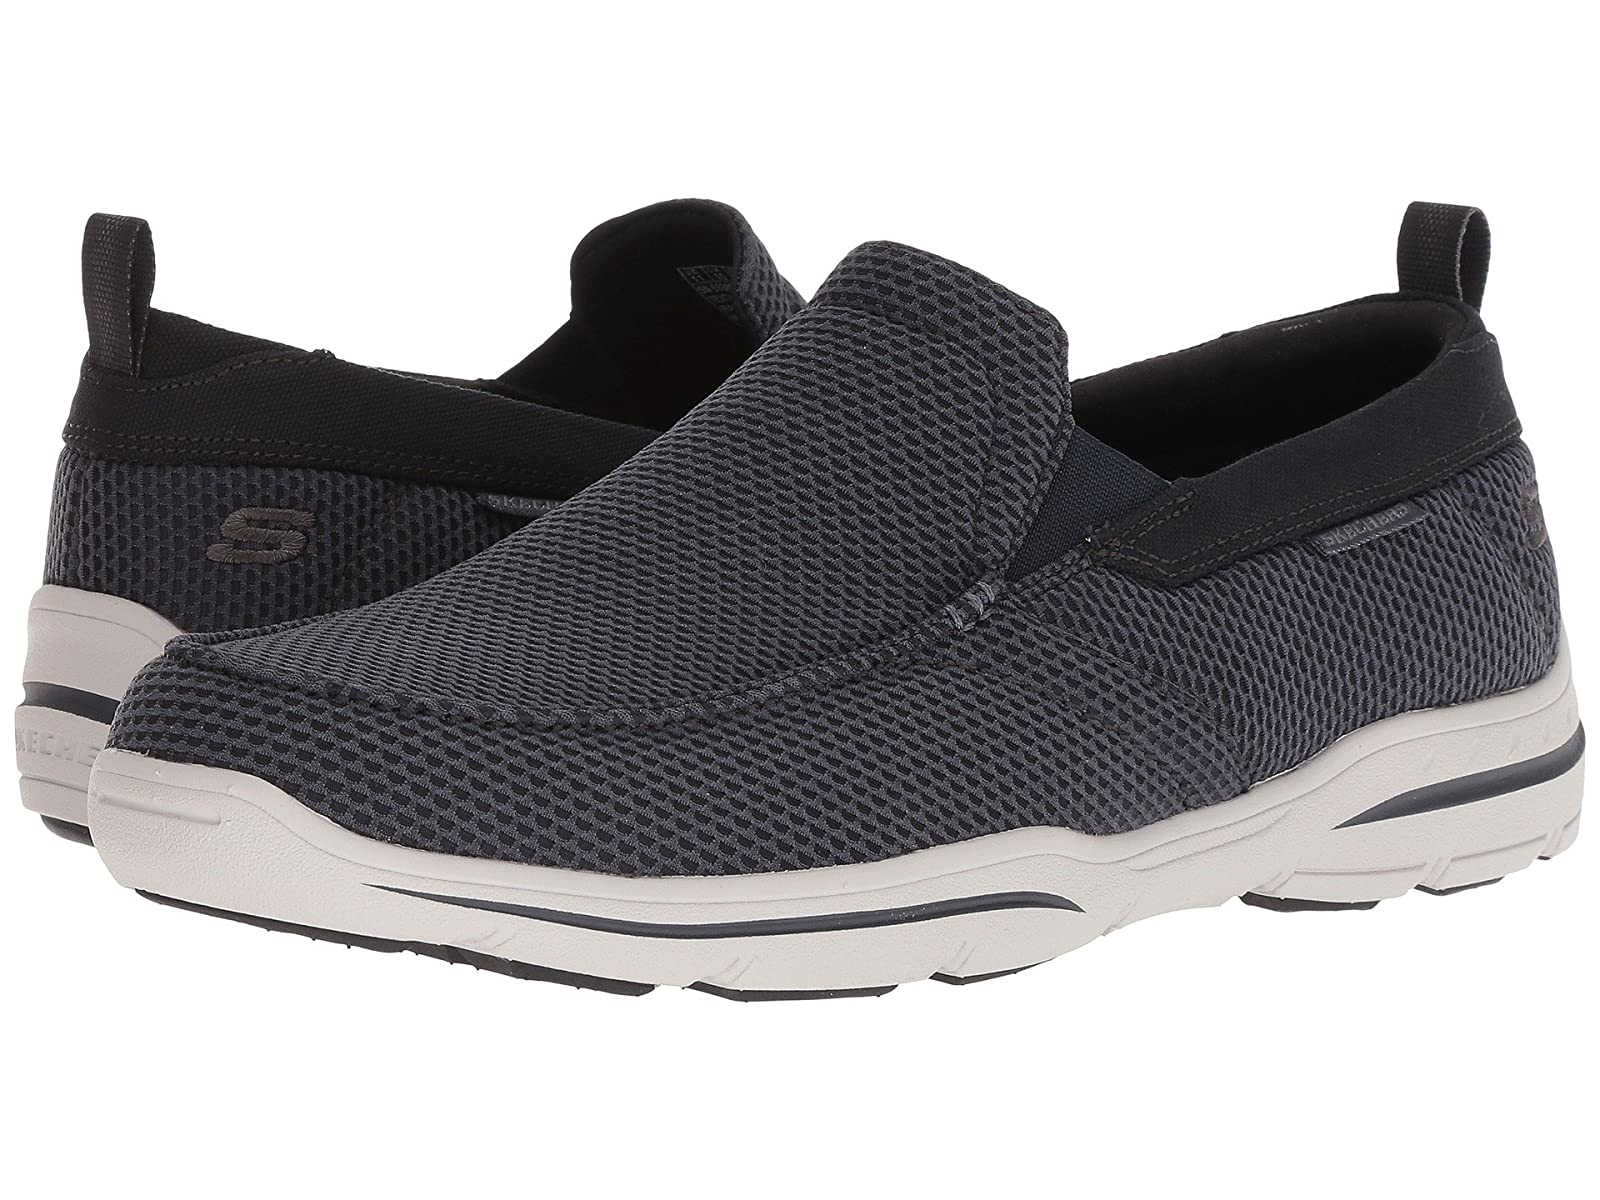 SKECHERS Relaxed Fit®: Harper - WaltonCheap and distinctive eye-catching shoes